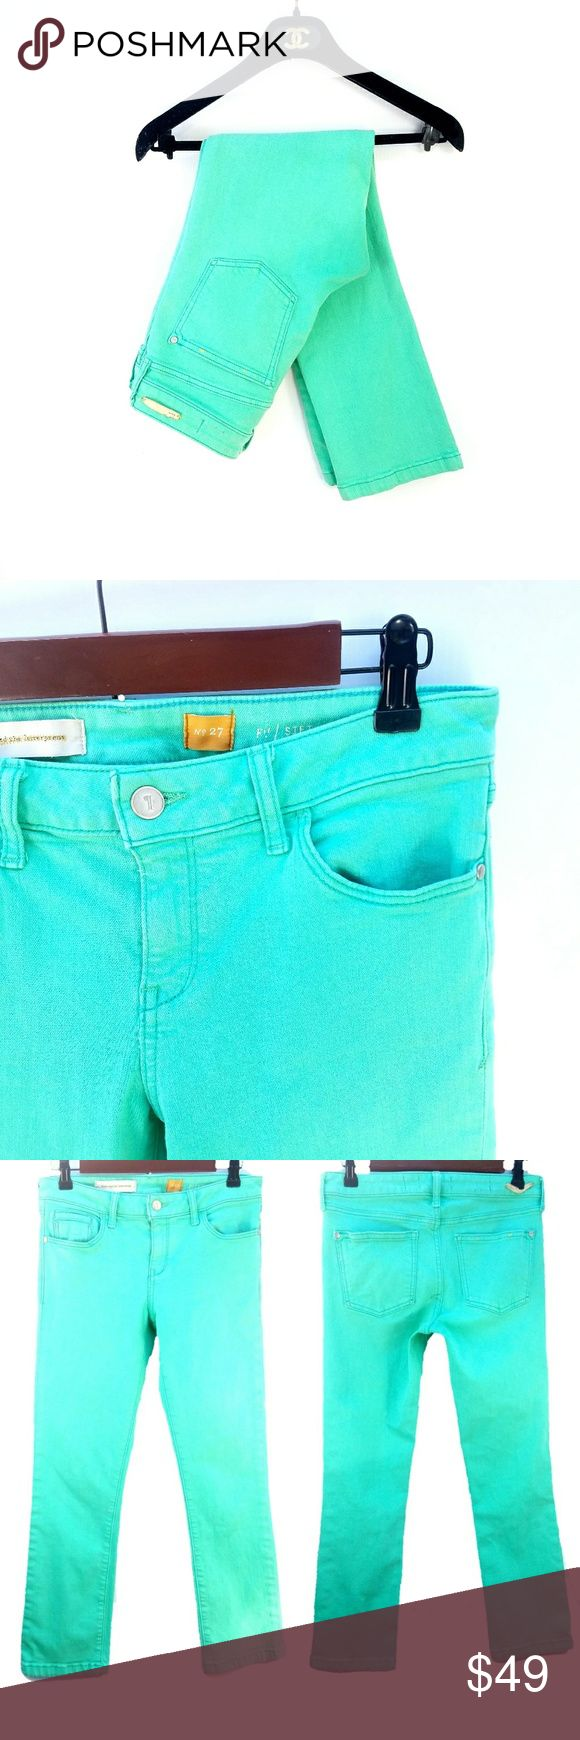 Anthropologie Stet Crop Turquoise Jeans Pilcro and the Letterpress, a green/turquoise color Outerseam 33 in Inseam 25 in Waist 15 in Rise 8.5 in Excellent condition  Feel free to ask me any additional questions! No trades, or modeling. Happy Poshing! Anthropologie Jeans Ankle & Cropped